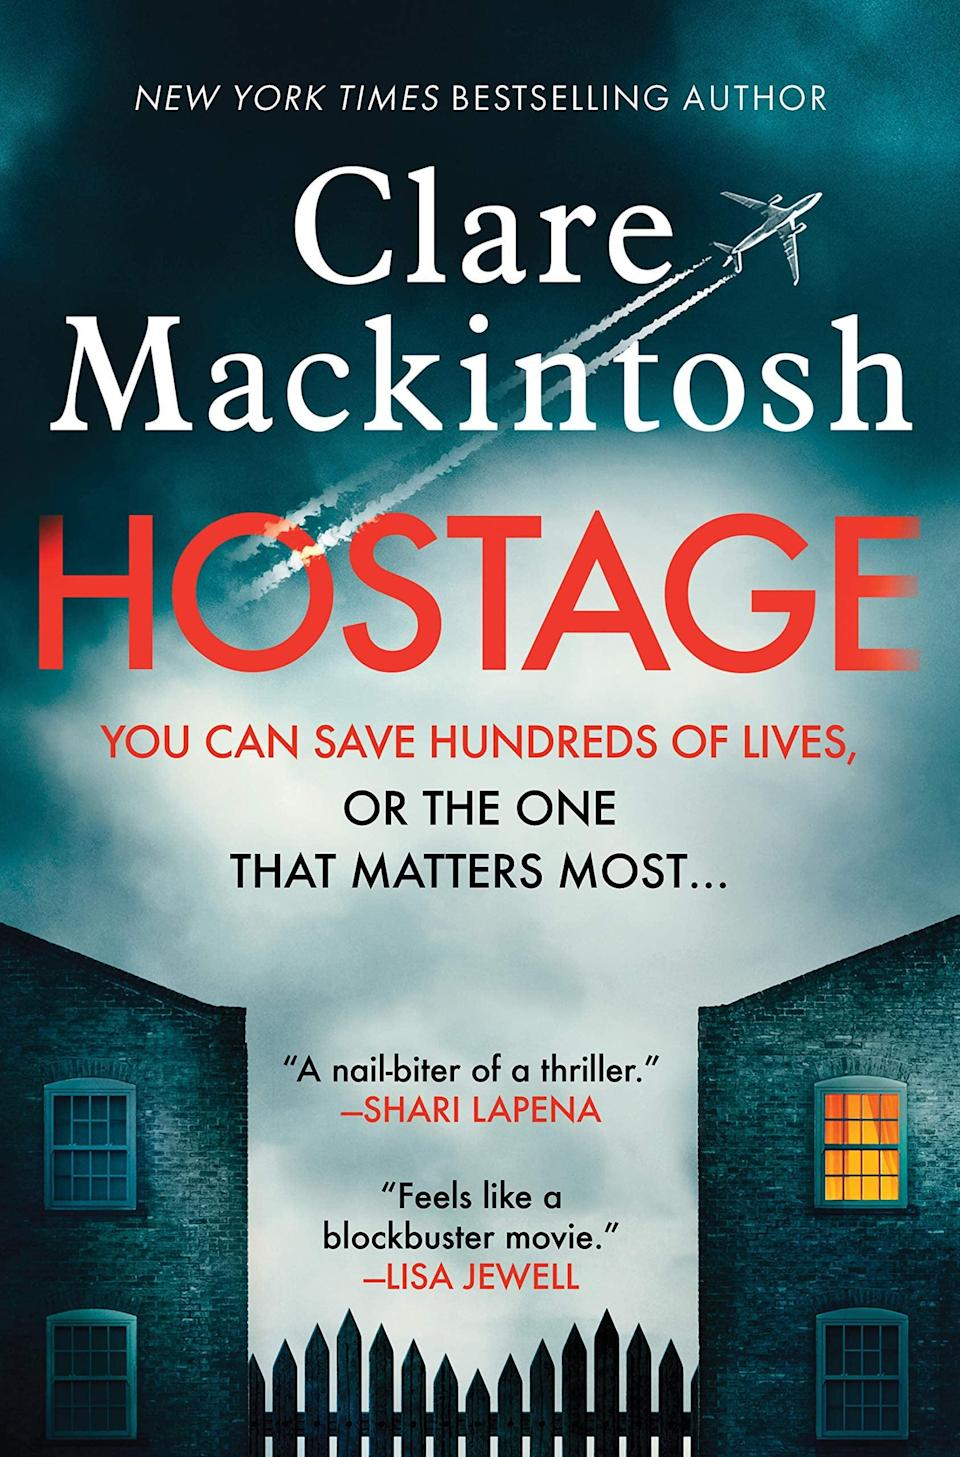 <p>If you're looking for a thriller that never lets up on the tension, then look no further than <span><strong>Hostage</strong></span> by Clare Mackintosh. Set entirely on a 20 hour non-stop flight from London to Sydney, the story follows a flight attendant named Mina who is faced with an impossible choice: comply with the demands of an anonymous passenger who doesn't want the plane to make it to its final destination or let her daughter and husband die in order to save a plane full of strangers. </p> <p><em>Out June 22</em></p>